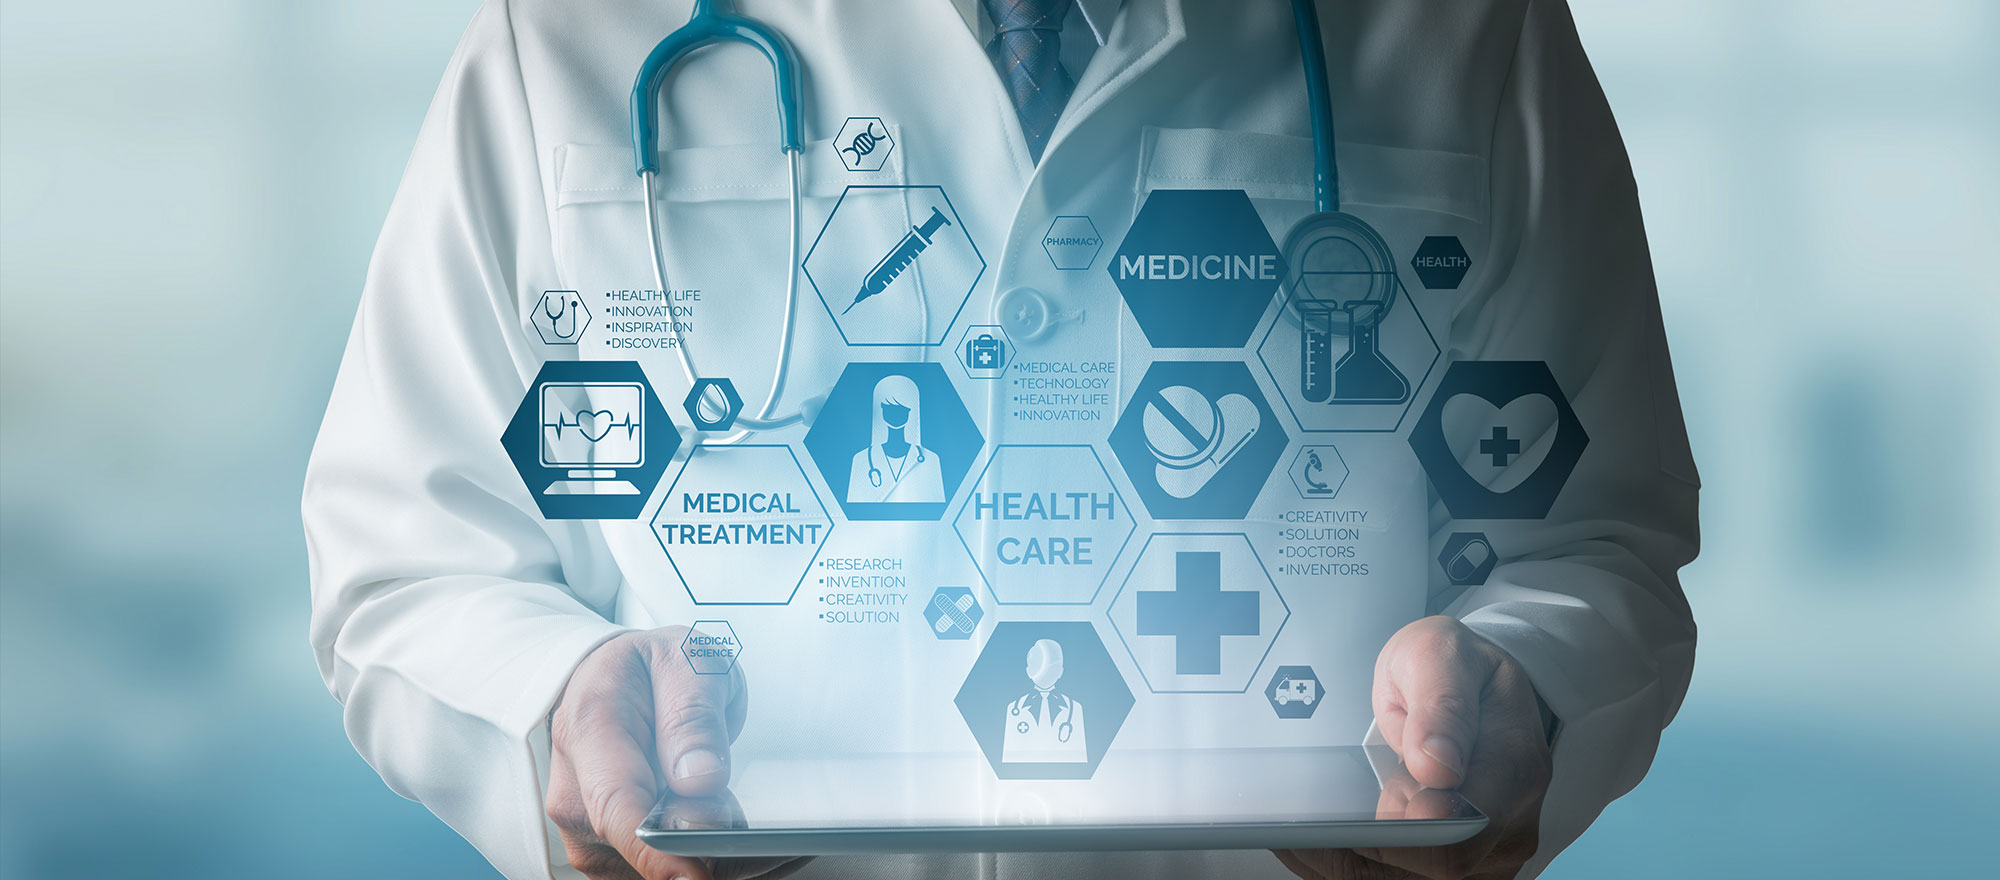 #3. Setting up Interactive Online Learning Programs for Healthcare via LMS